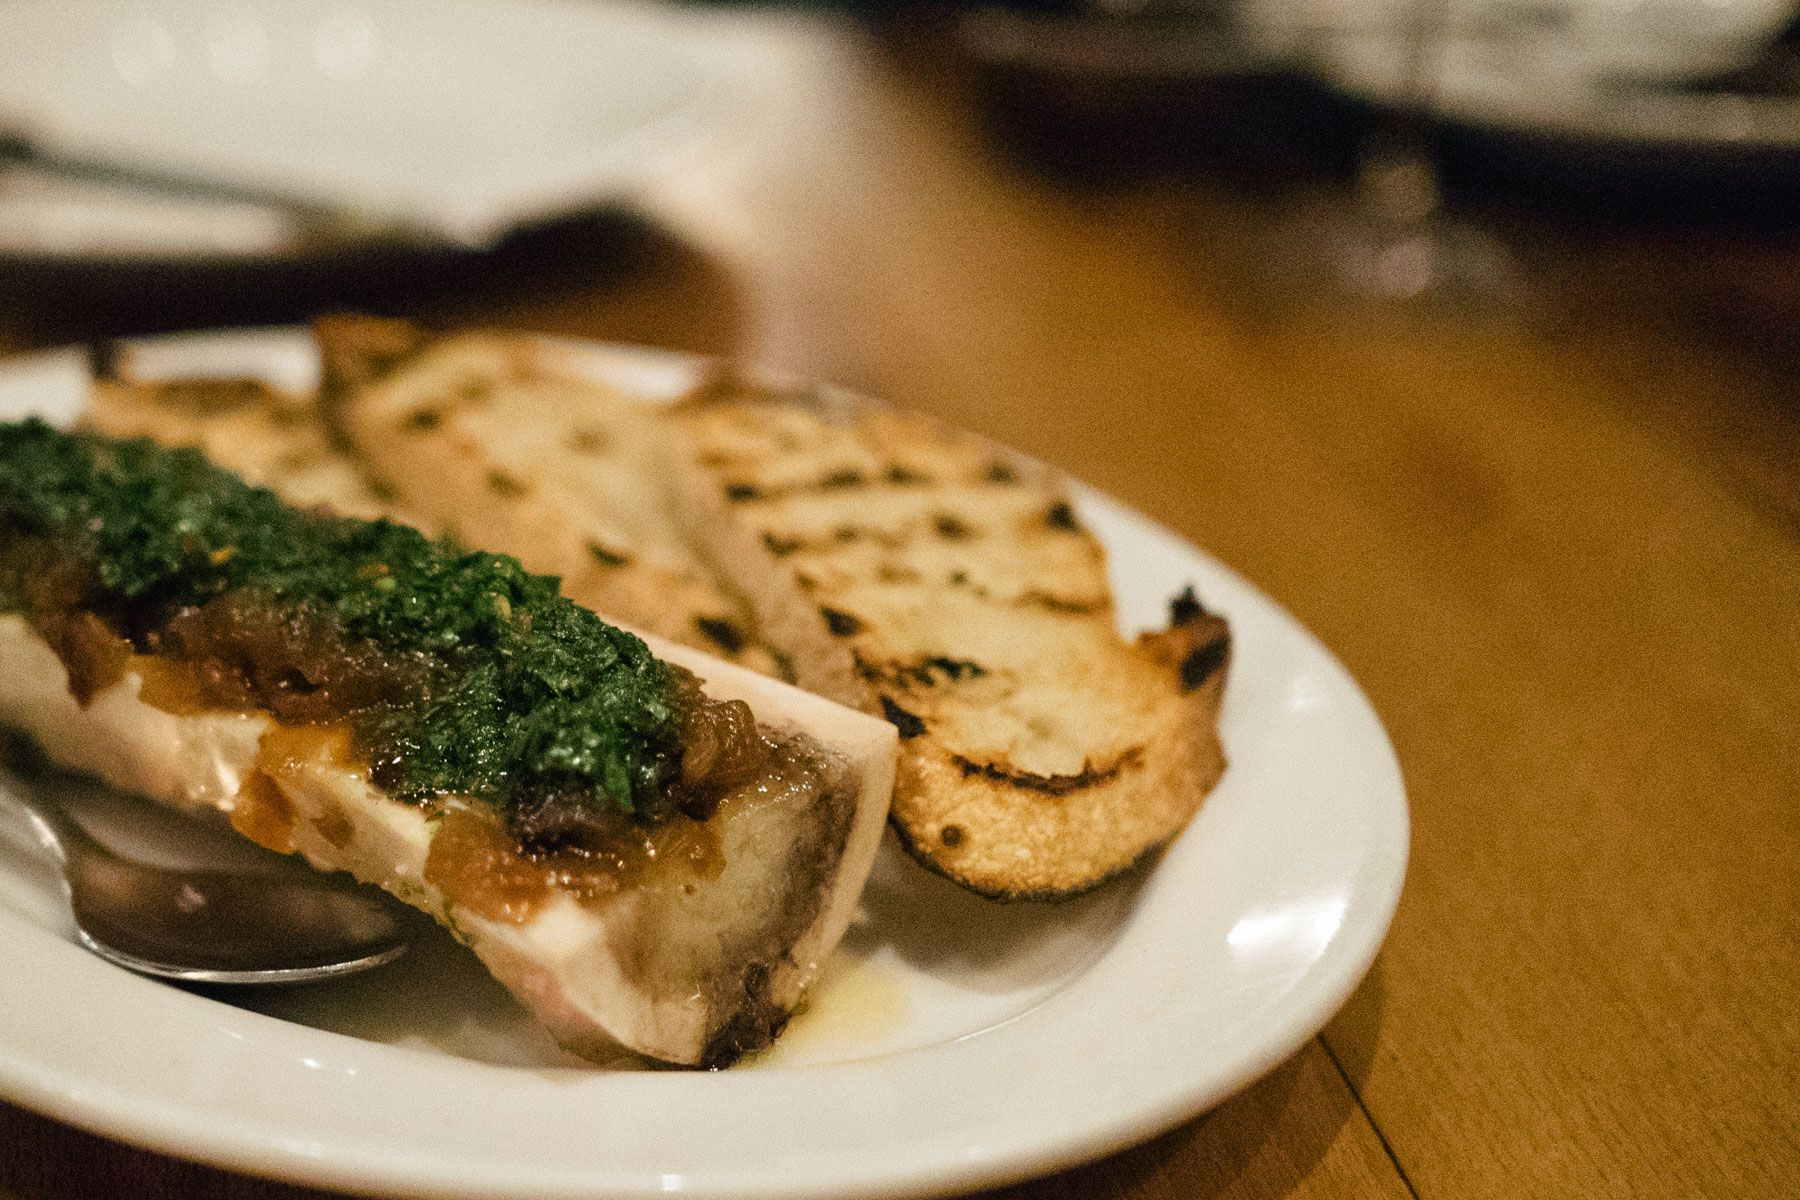 Los Angeles Cray Animal Restaurant Bone Marrow With Chimichurri And Caramelized Onions Food Chicken Livers Smoked Turkey